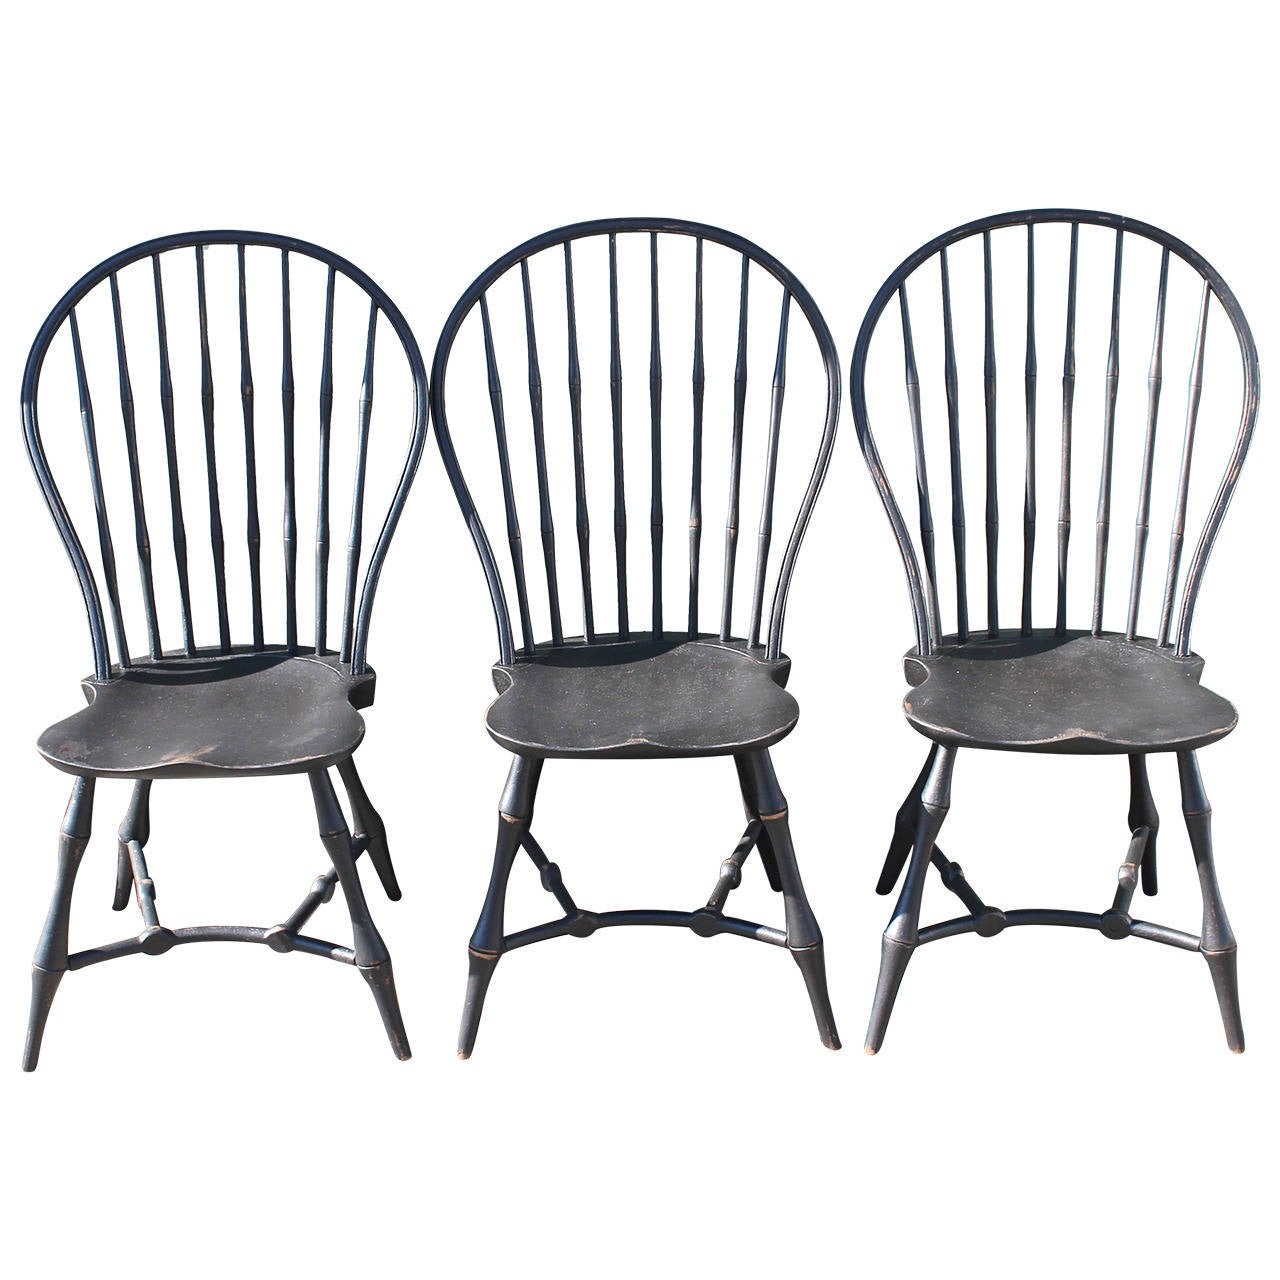 Black Windsor Chair Set Of Three 19th Century Black Painted New England